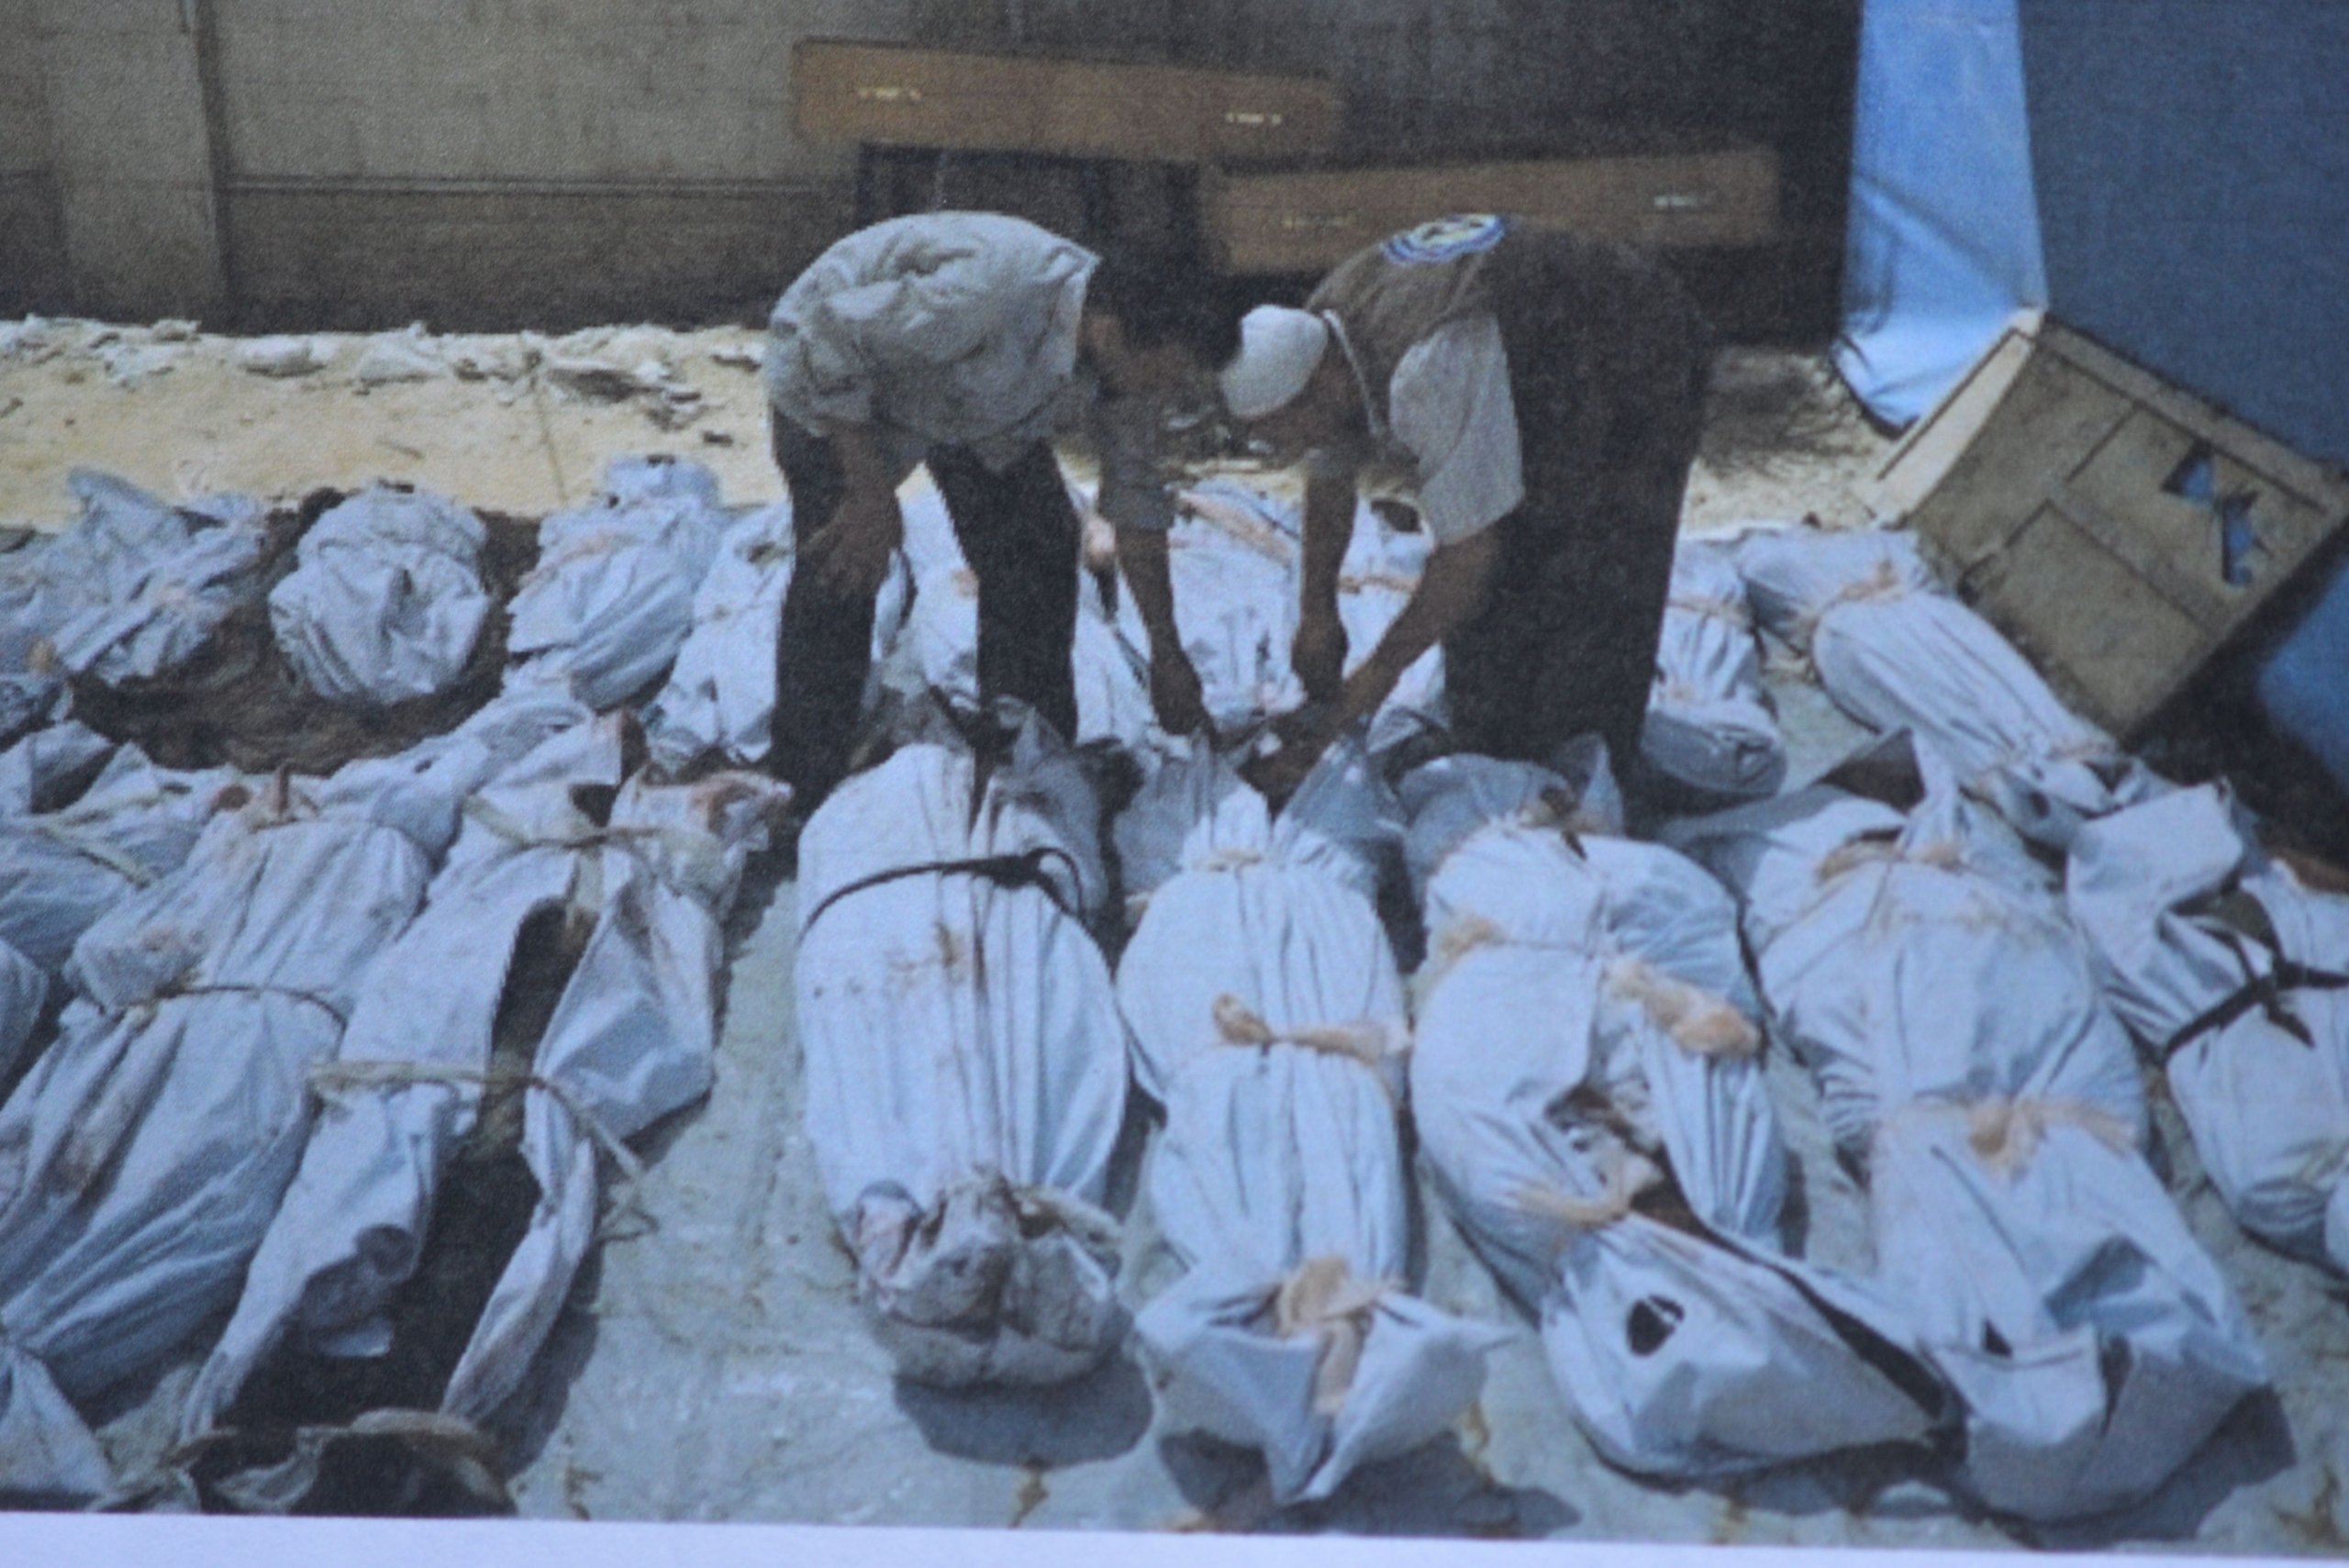 Photo 5. Shrouded bodies Middle East